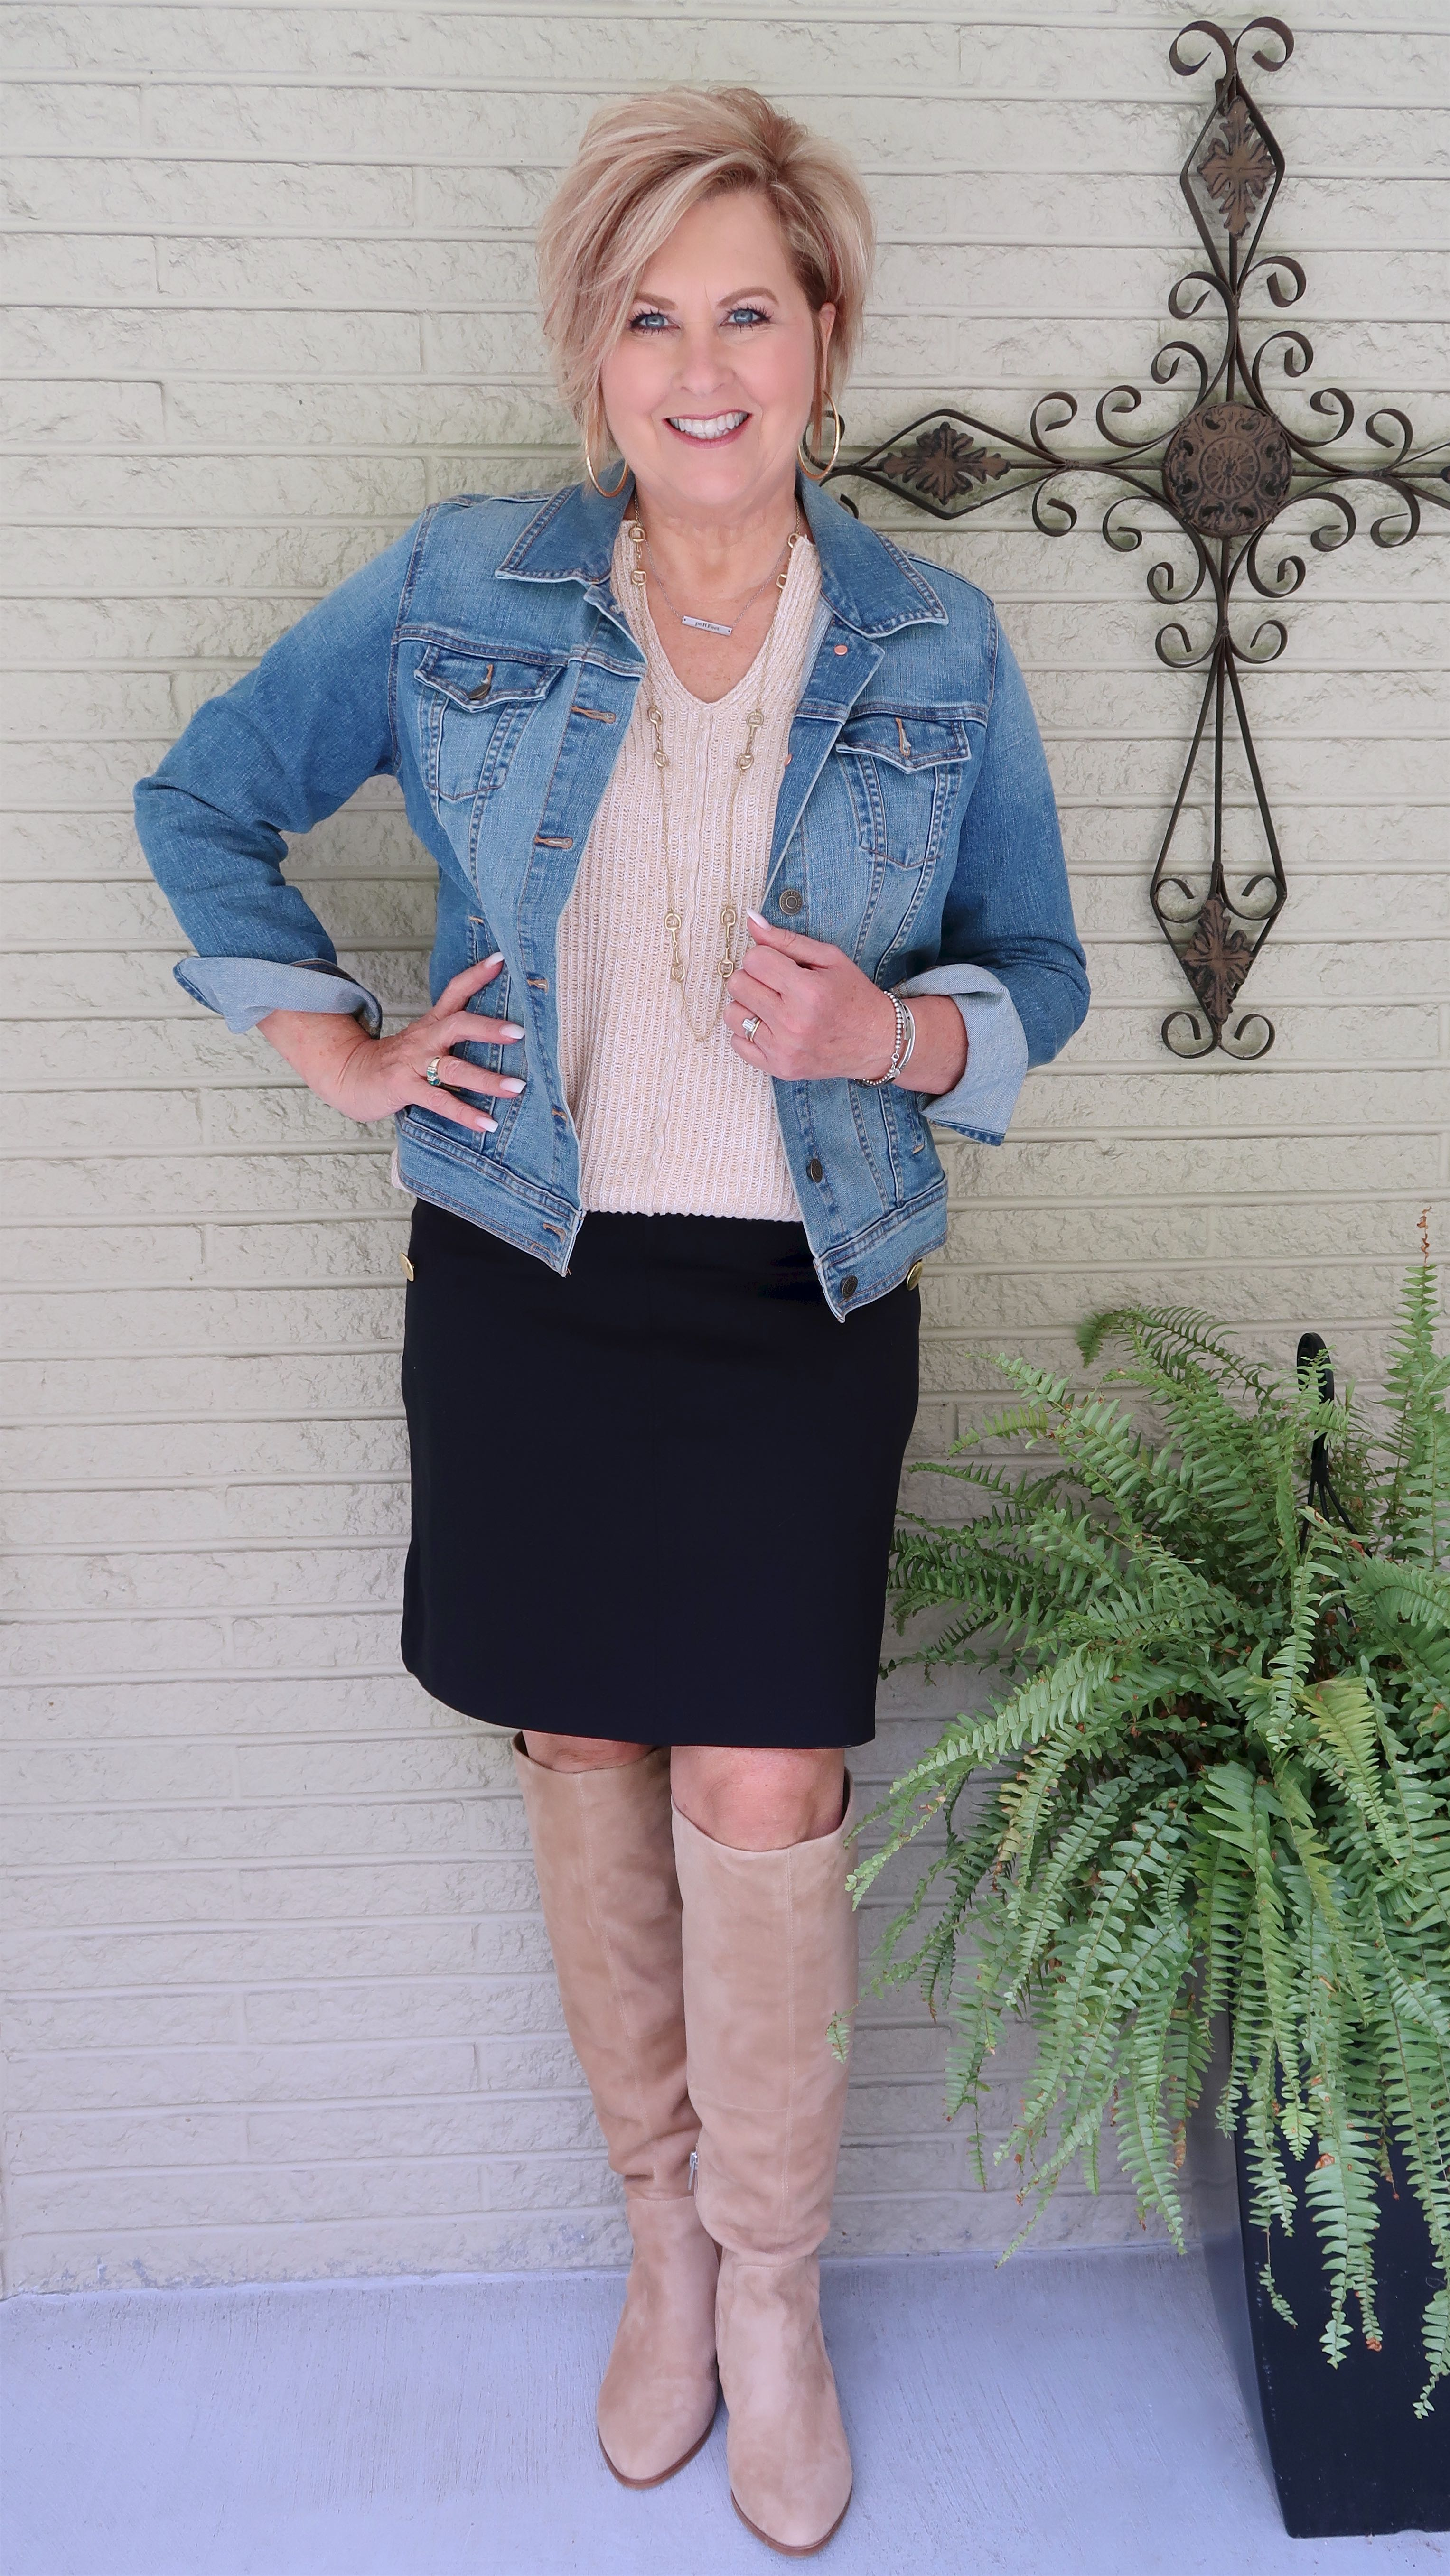 Fashion Blogger 50 Is Not Old in a denim Jacket, a navy skirt, and knee boots